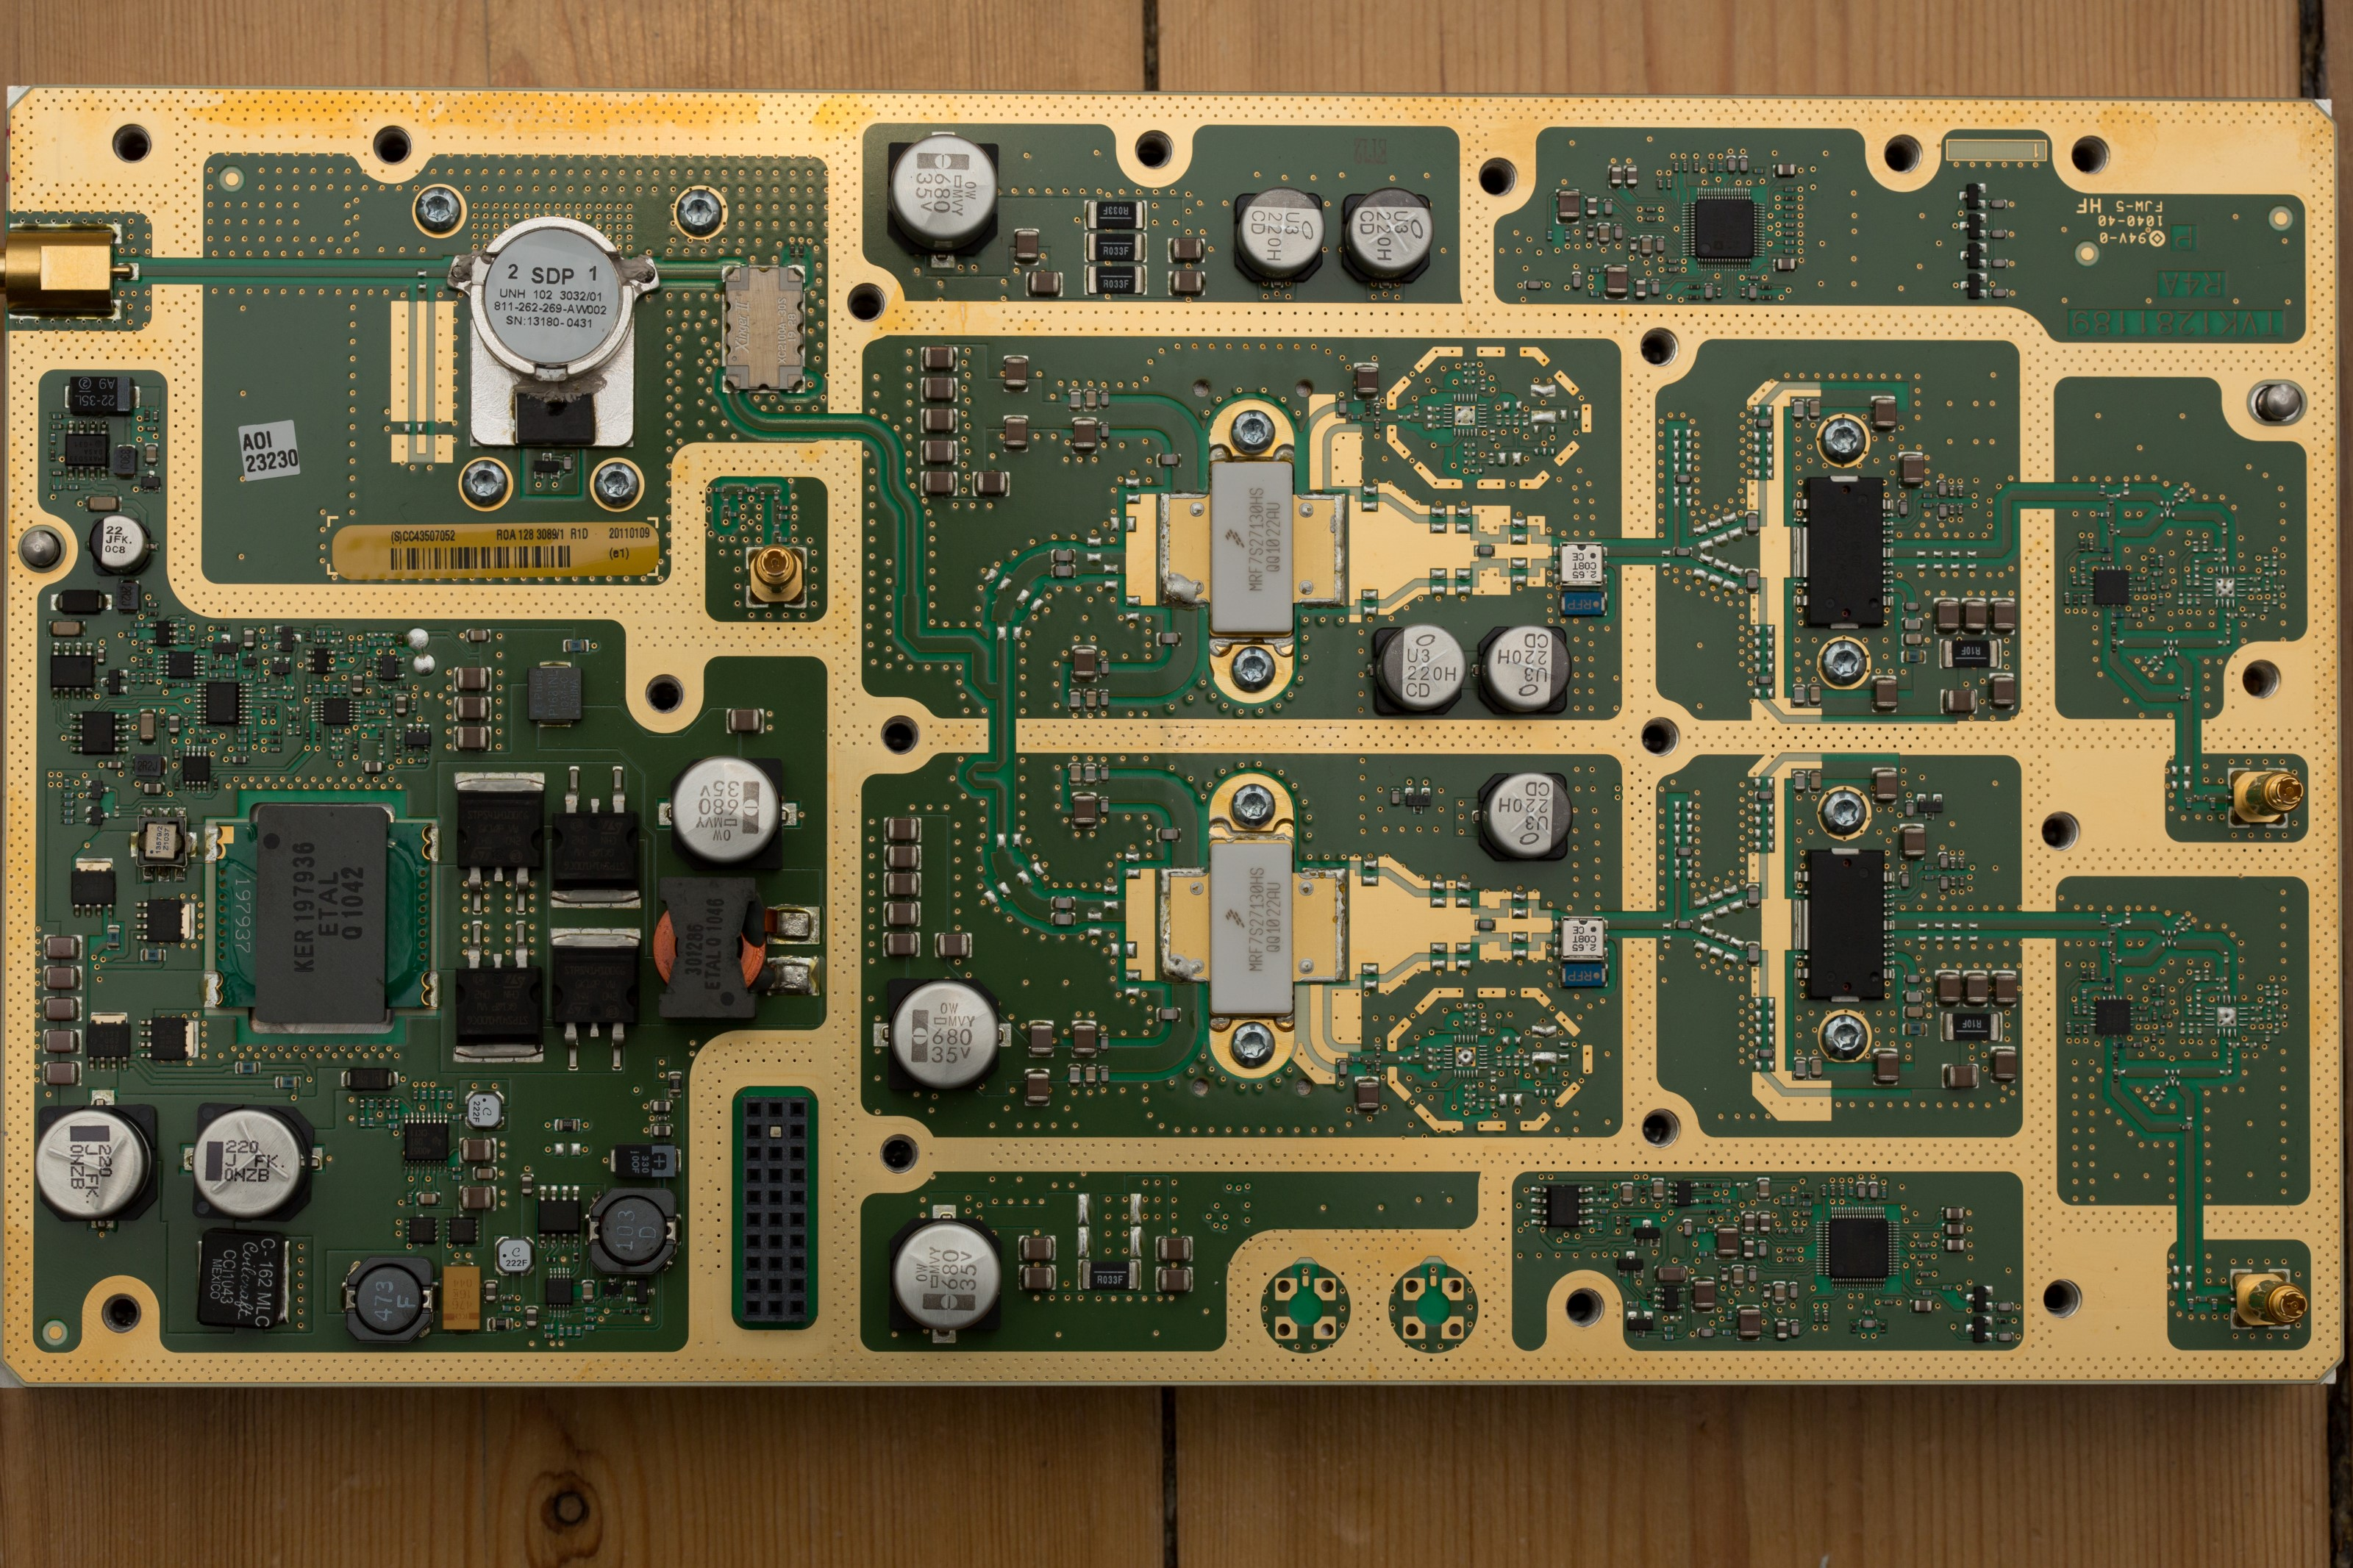 Ericsson Radio Base Station RBS6000 teardown